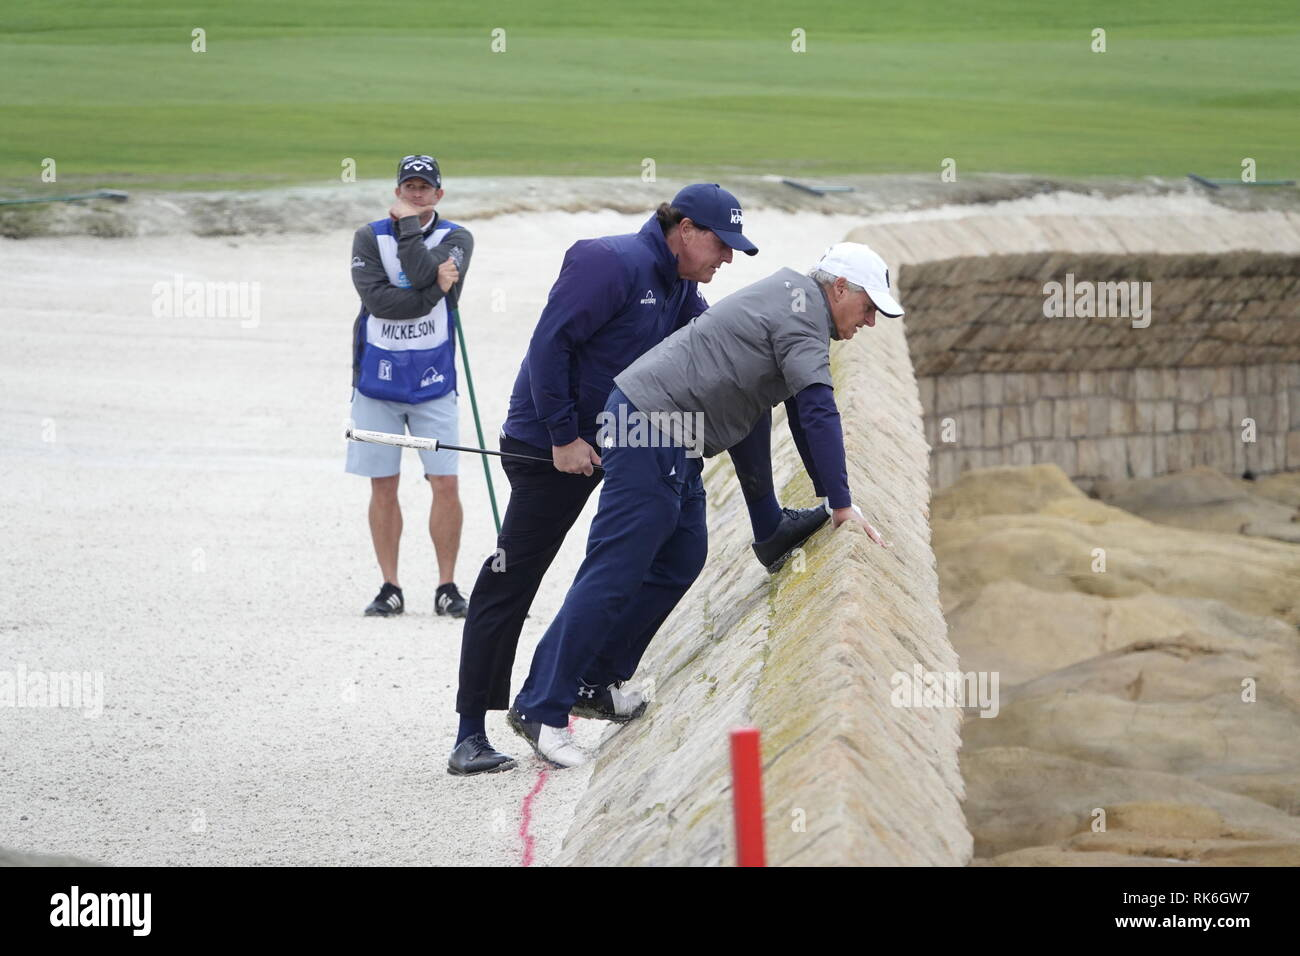 9th February, 2019  Pebble Beach Golf Links, CA, USA  Phil Mickleson and amateur partner Scott Ozanus strike a pose on the sea wall defenses of the 18th as he trys to find playing partner Patrick Reed's errant ball during the third round at Pebble Beach Golf Course during the AT&T Pro-Am Credit: Motofoto/Alamy Live News - Stock Image